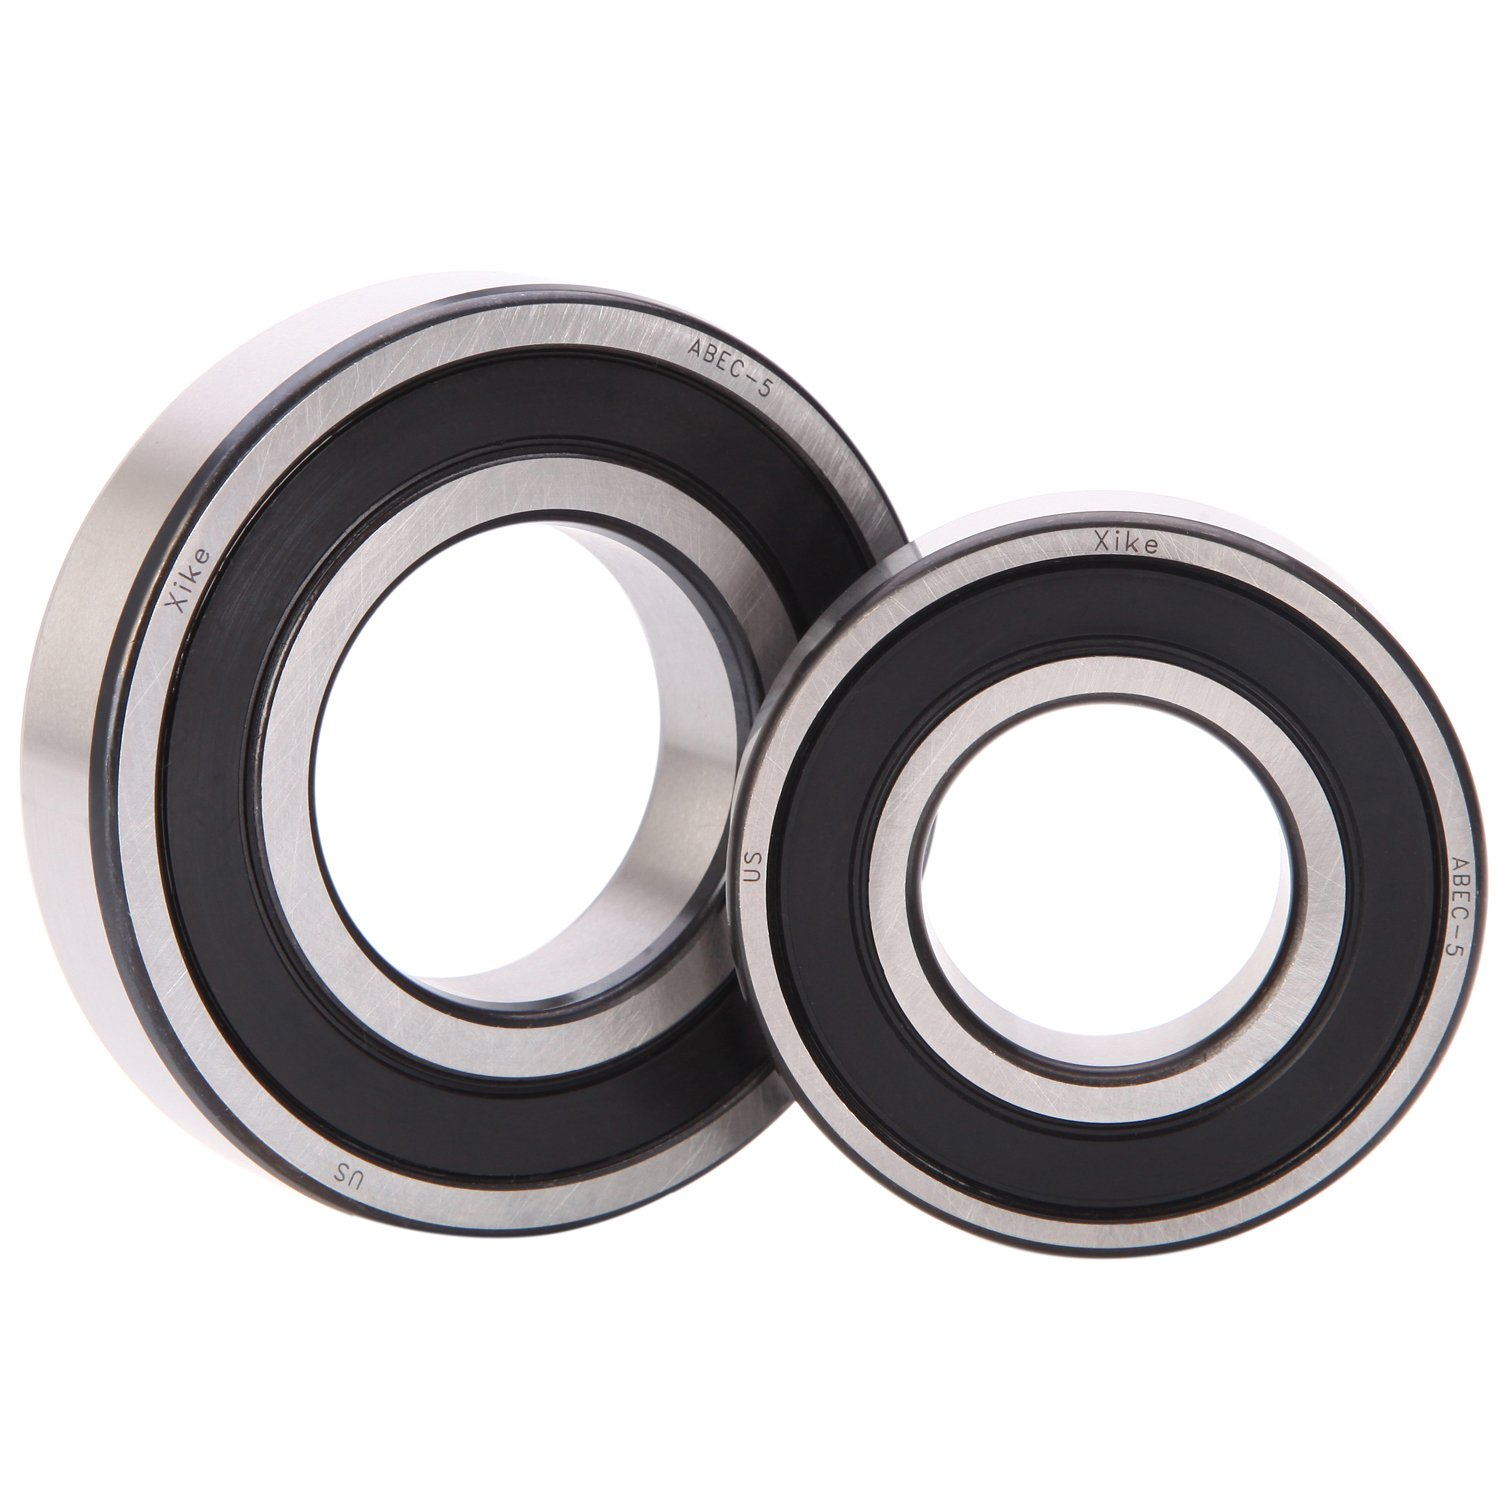 280232 Washer Tub Bearings And Seal Kit Rotating Quiet Diagrams Bearing Repair W10435302 Should Work For Your High Speed Long Life Replaces Whirlpool Maytag Ps2028175 W10004170